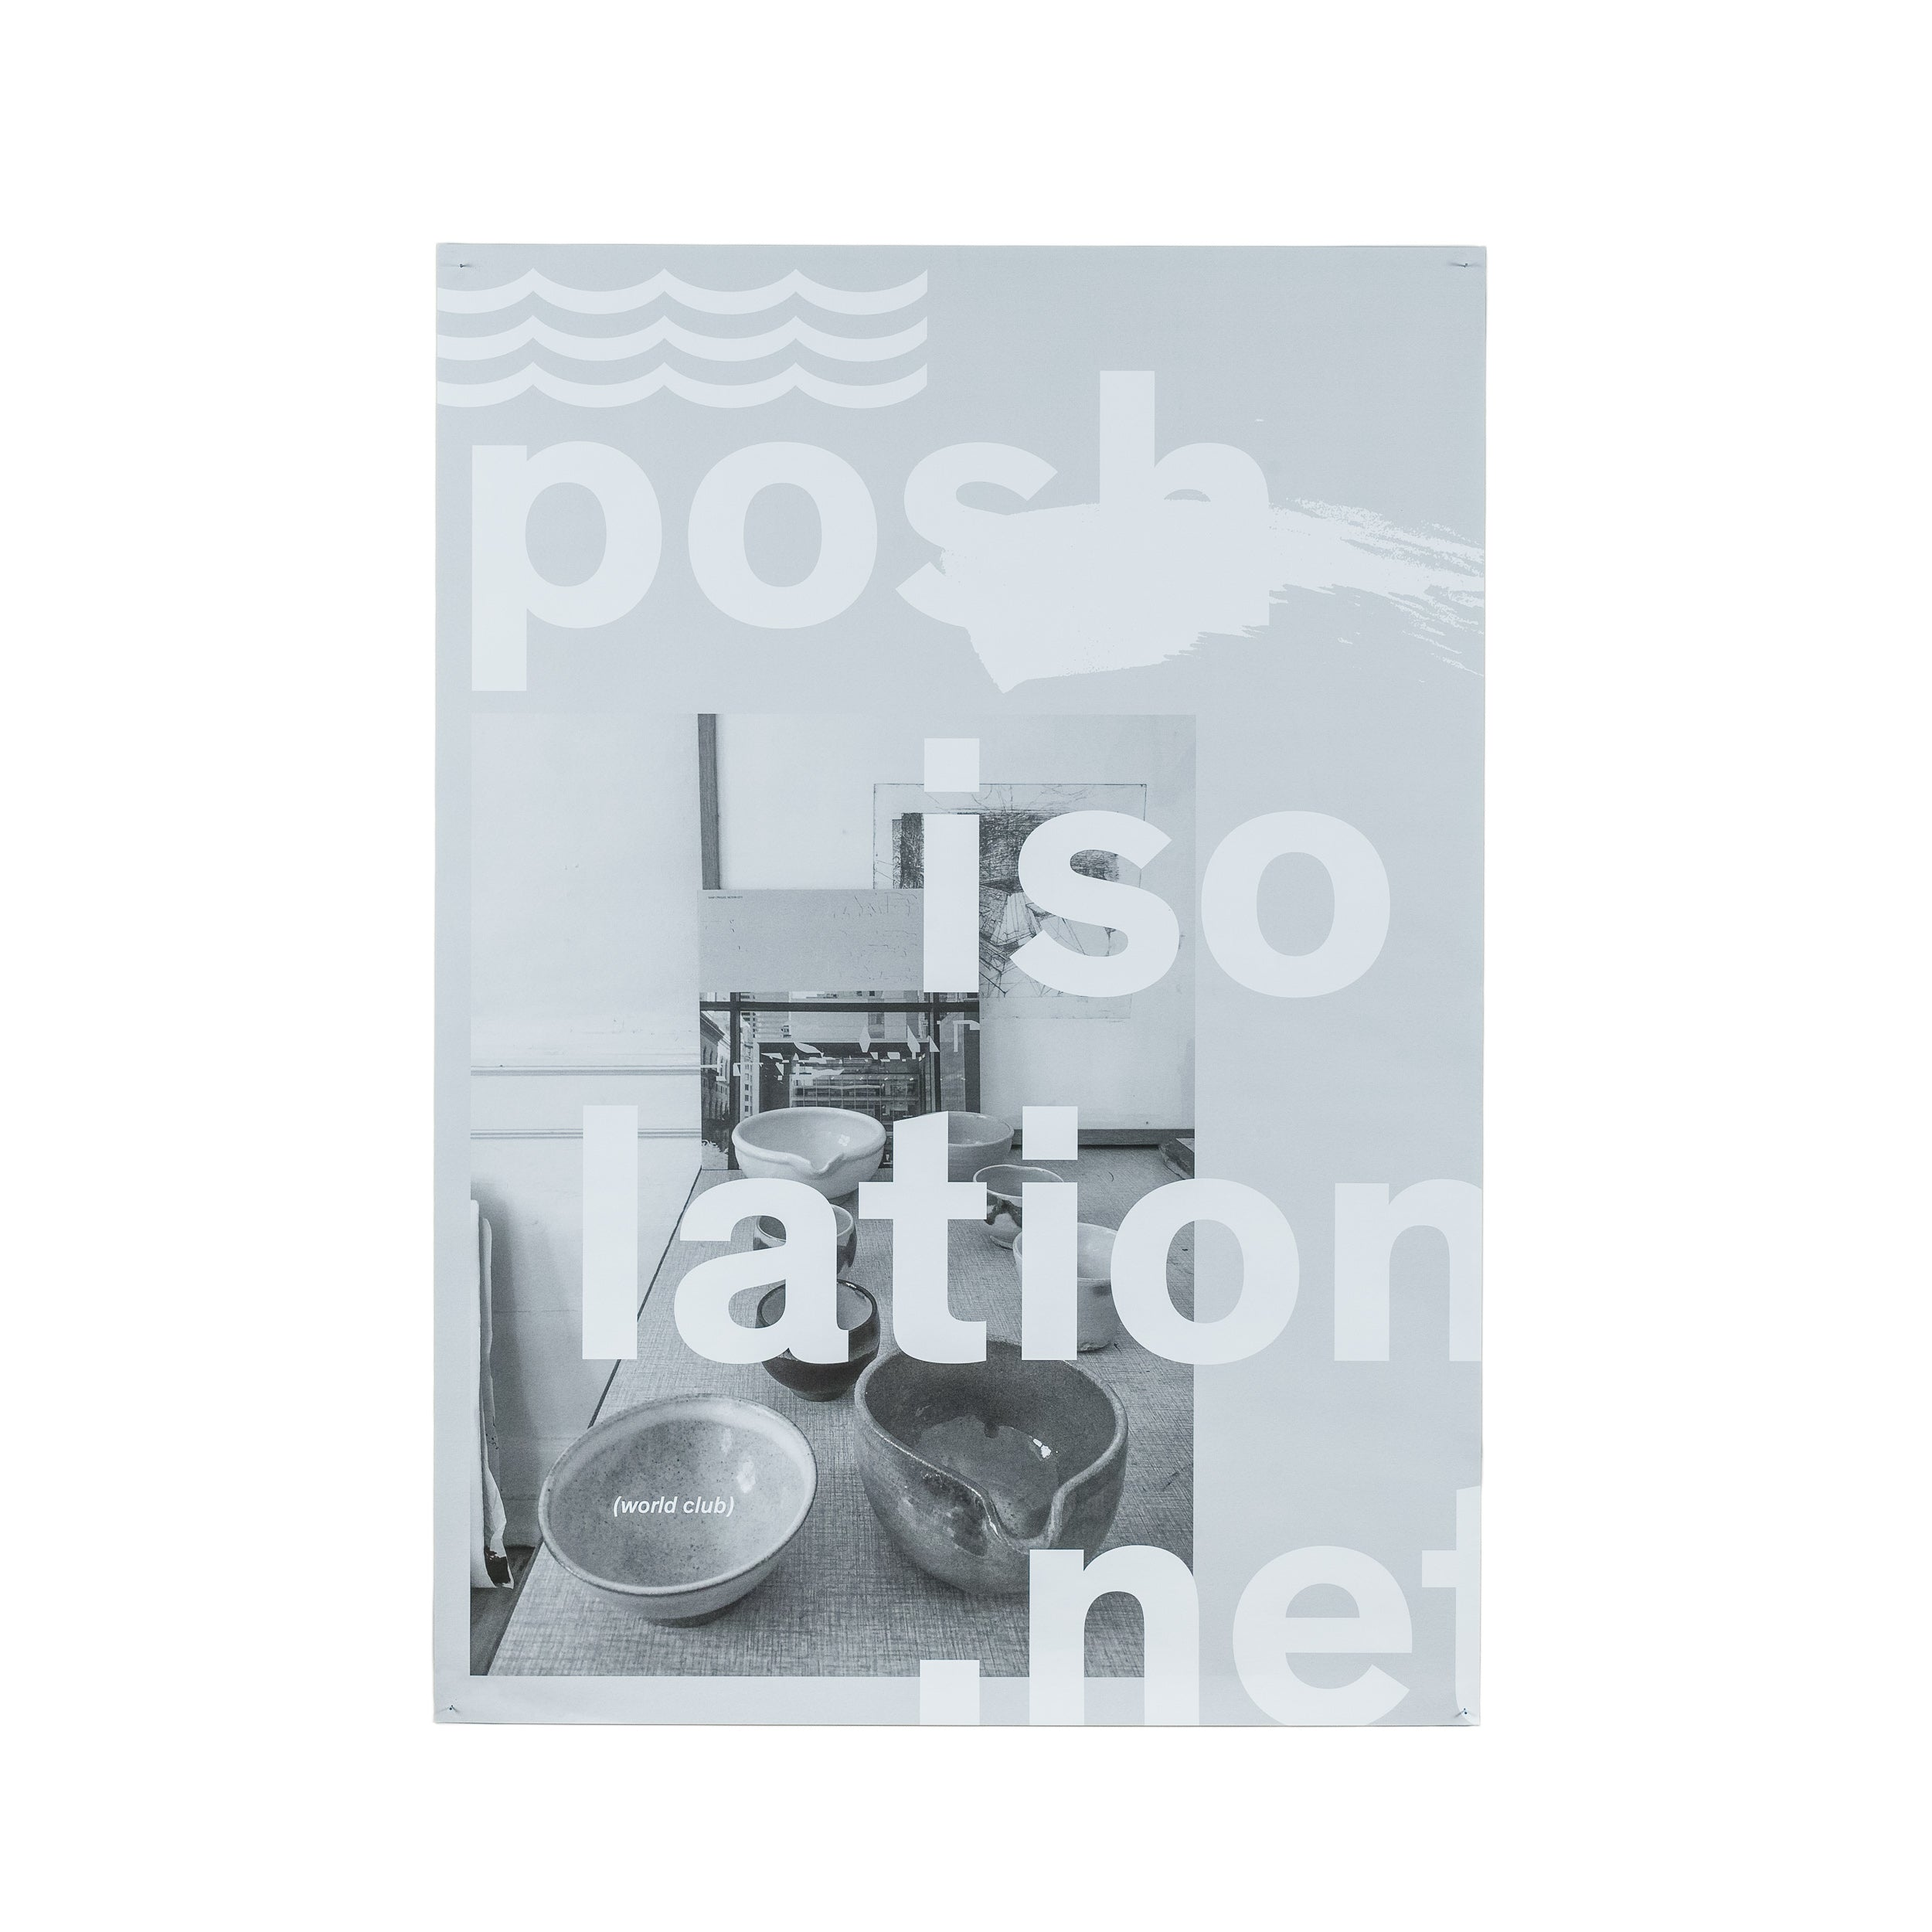 "Posh Isolation ""World Club"" Poster"